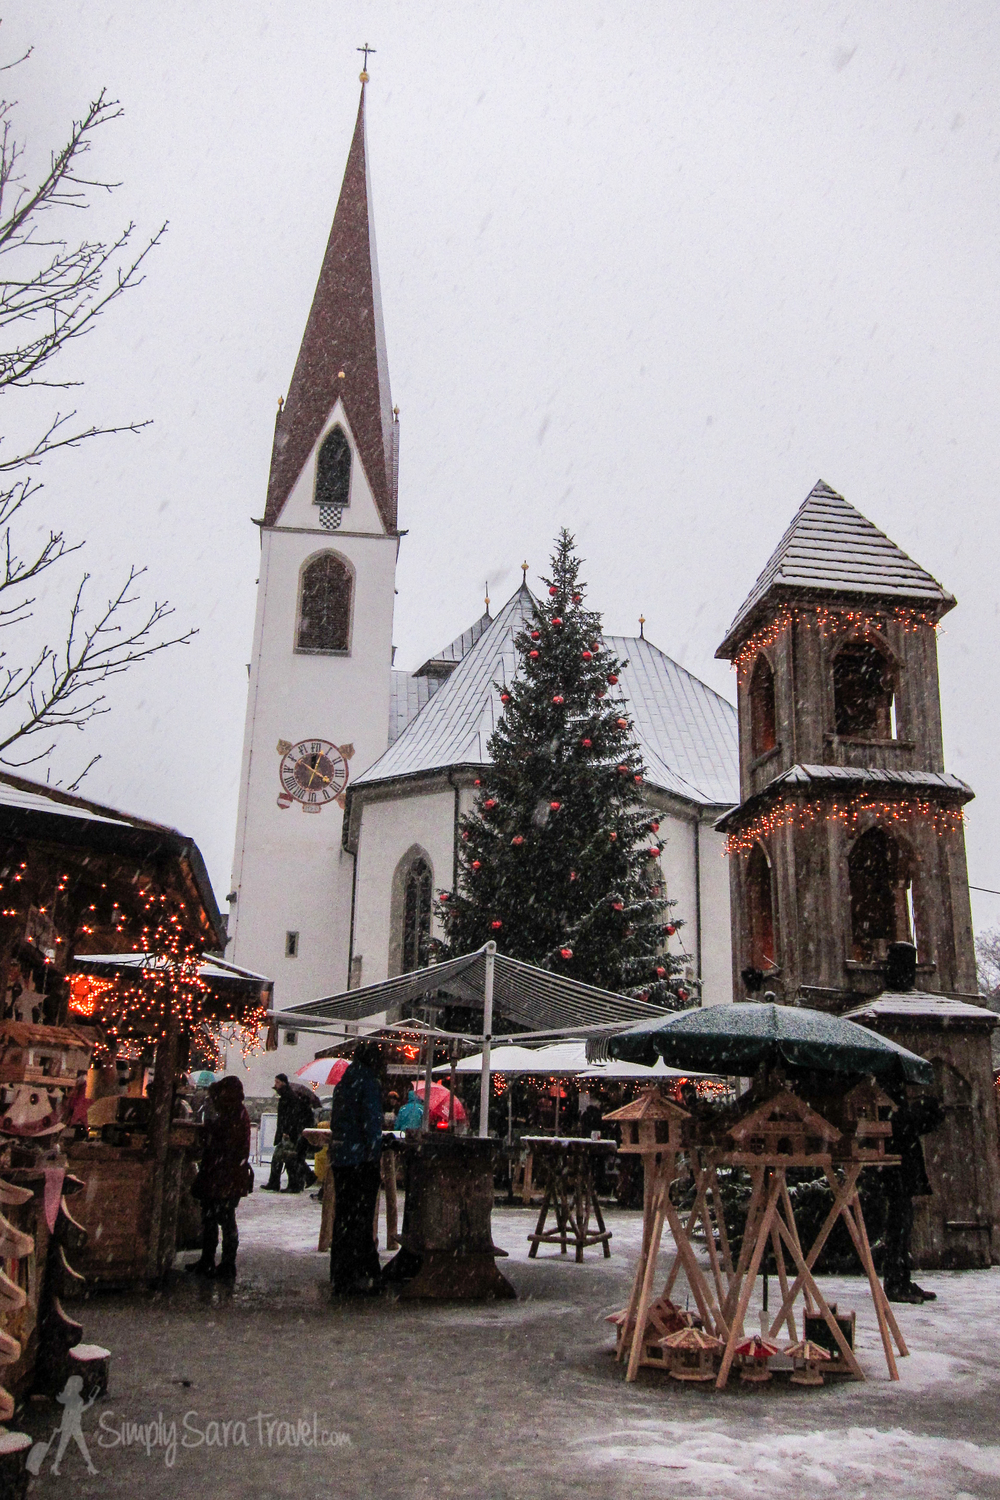 The Christmas market in Seefeld with St. Oswald's church in the background